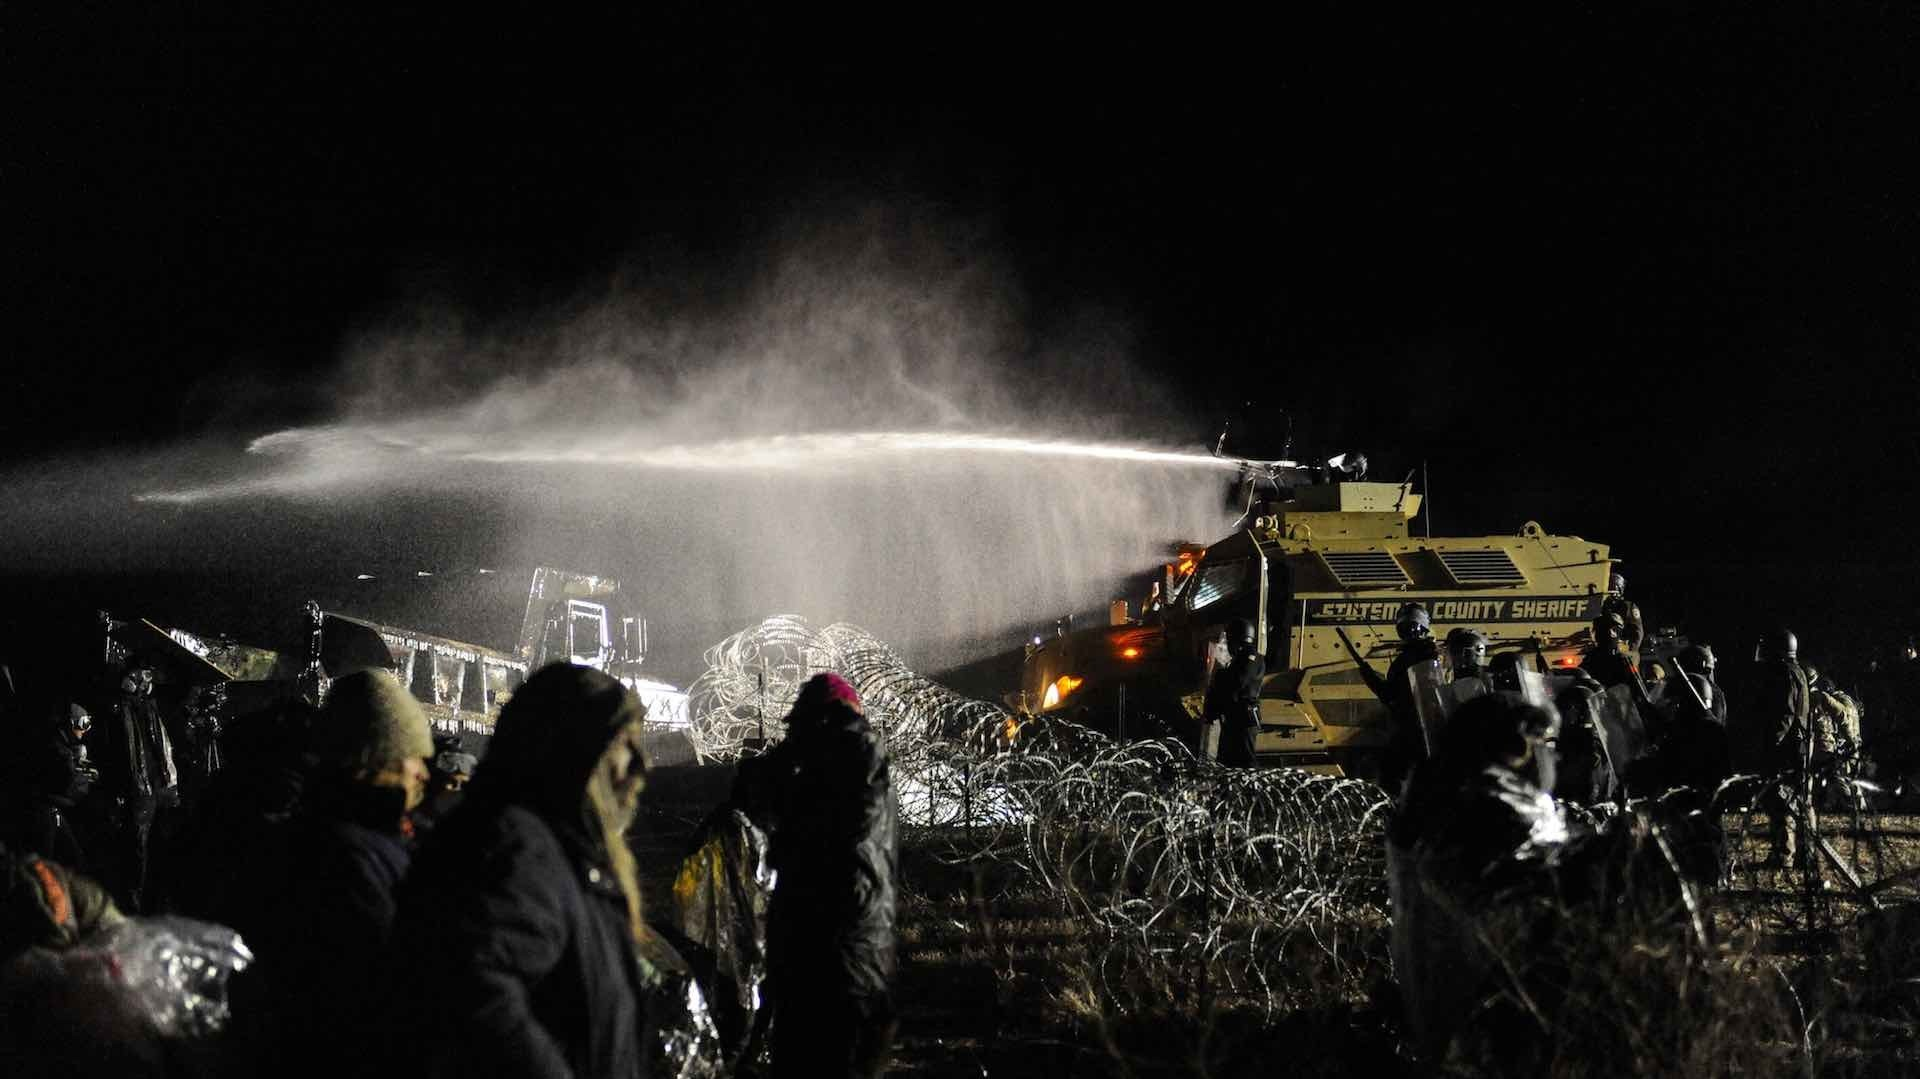 Police hit Standing Rock protestors with water cannons in freezing temperatures